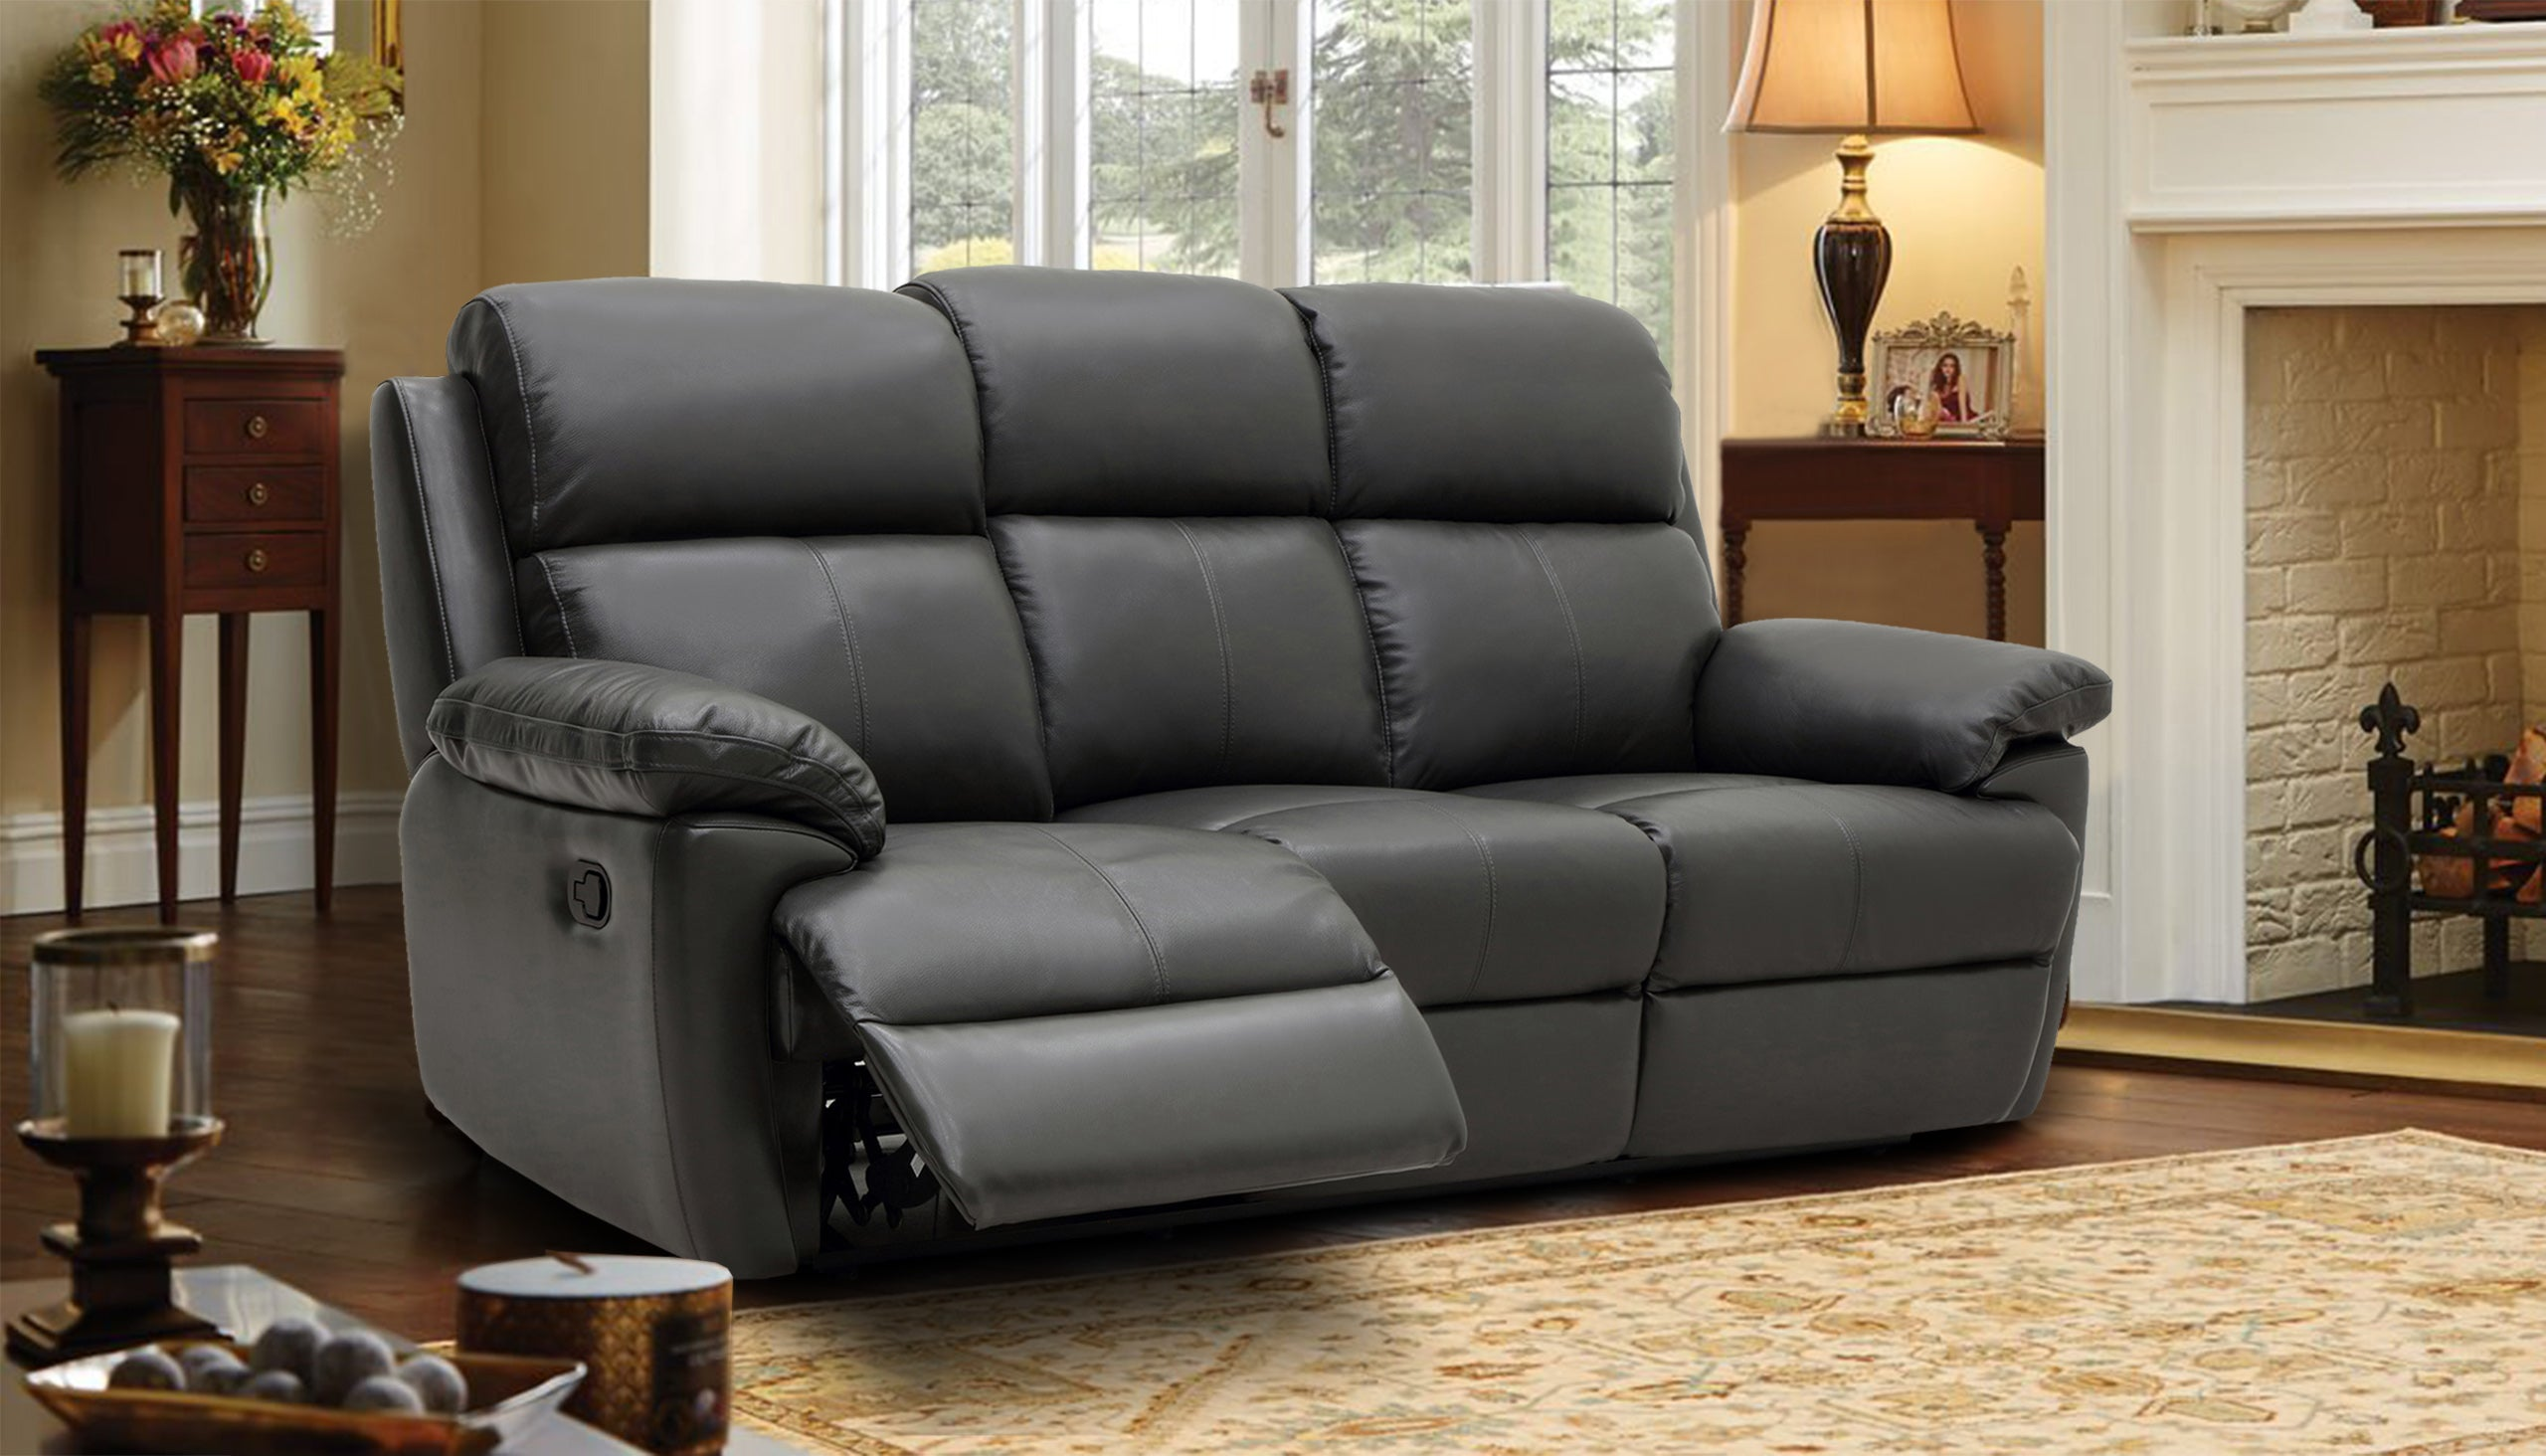 Blair 3 Seater Manual Recliner Sofa in Leather